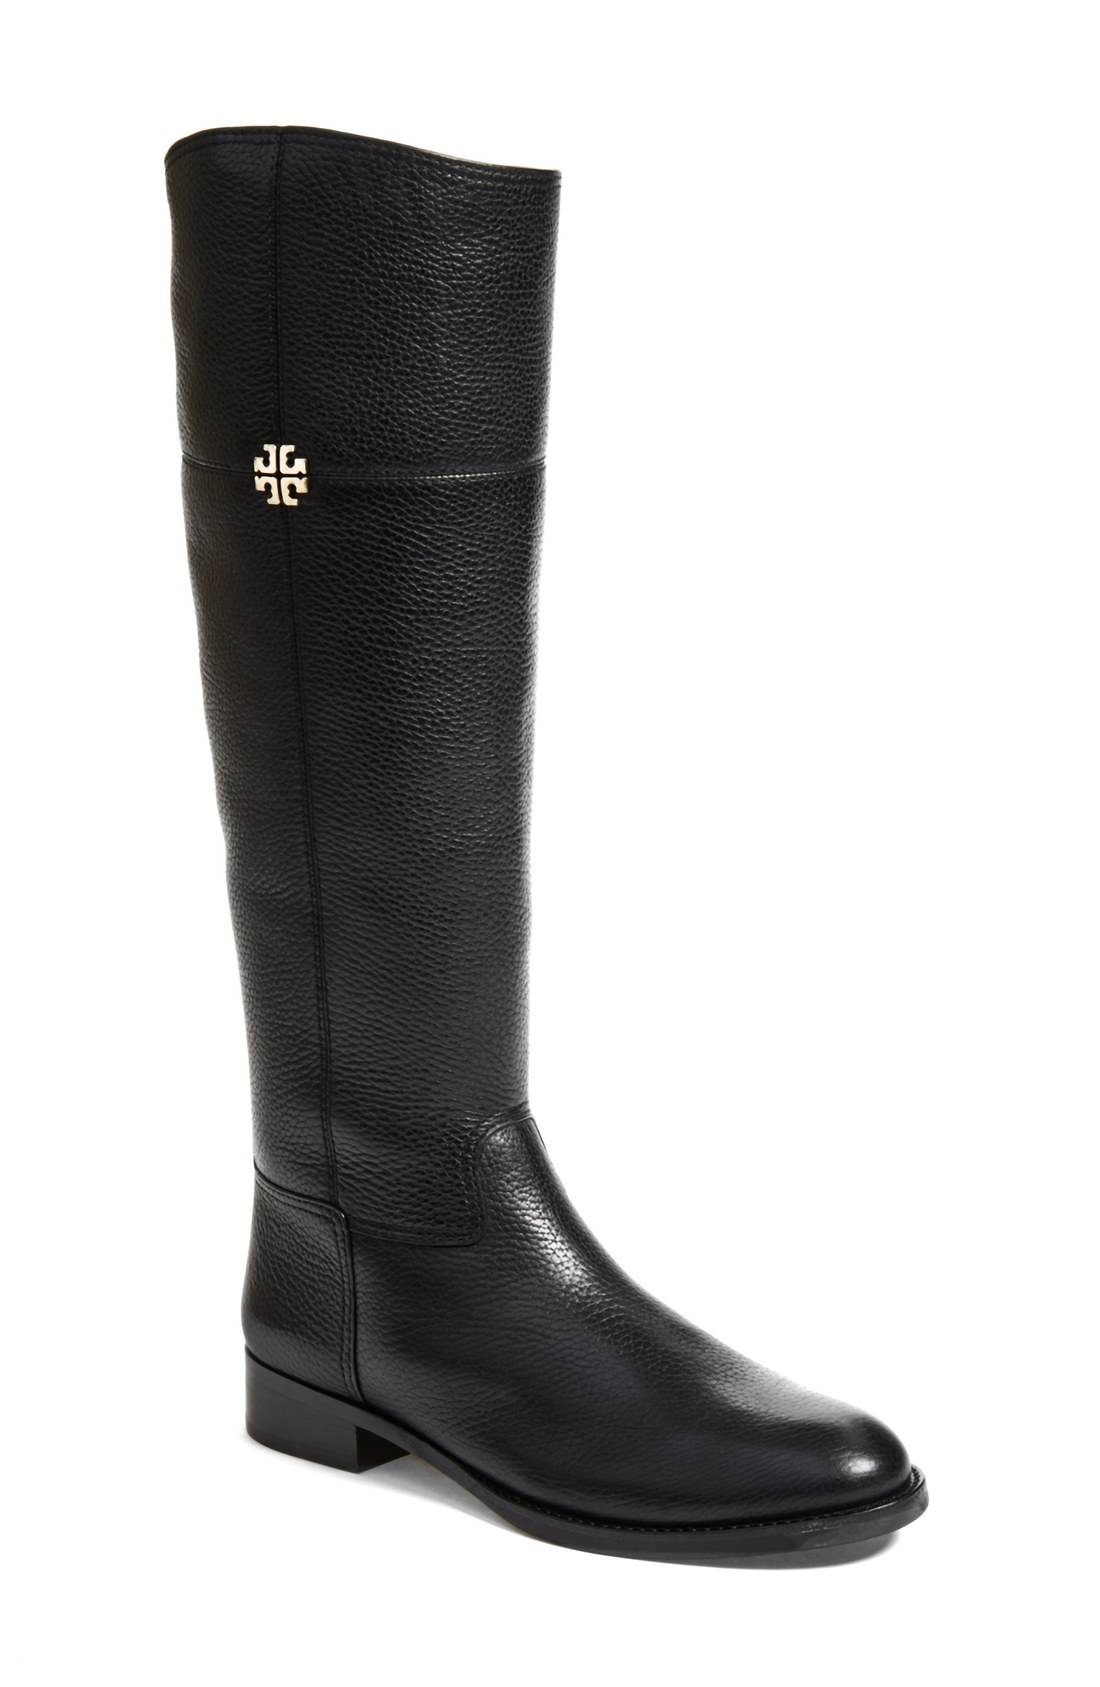 Black Riding Boots For Women cBdU6Uc4